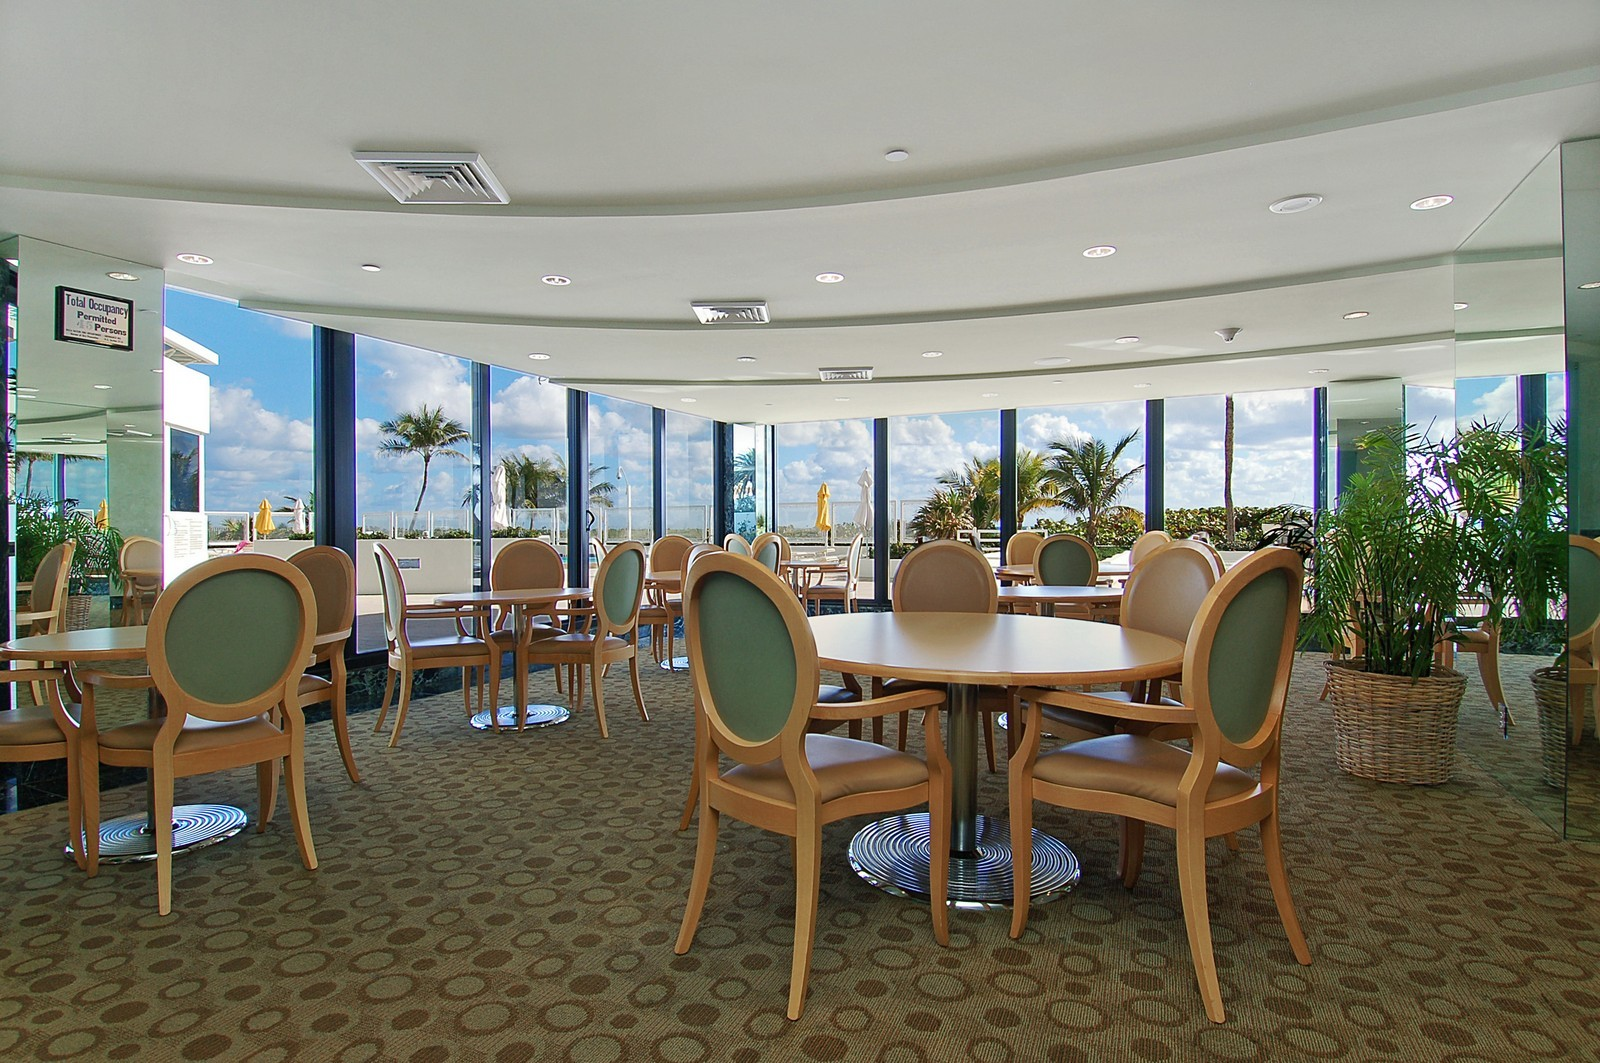 Real Estate Photography - 1400 S Ocean Blvd, Unit N1103-1104, Boca Raton, FL, 33432 - Restaurant